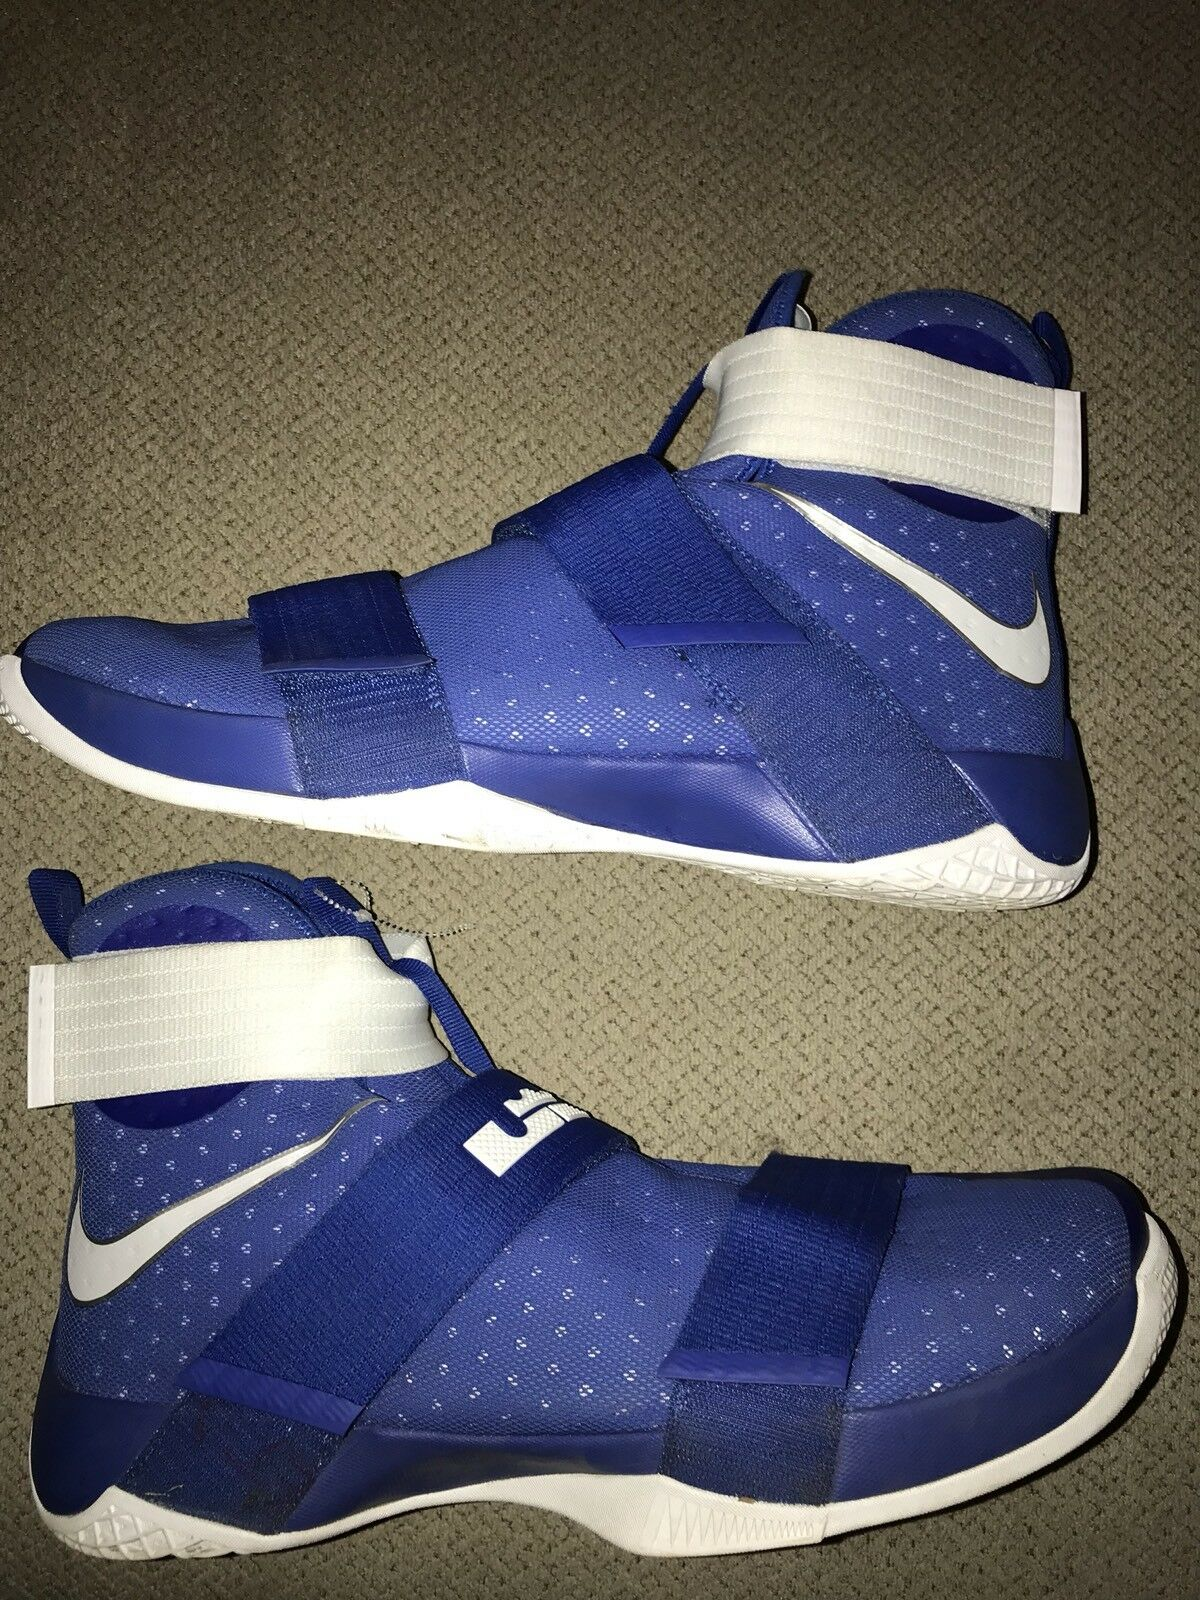 NEW NIKE LEBRON SOLDIER 10 TB SHOES MENS Price reduction